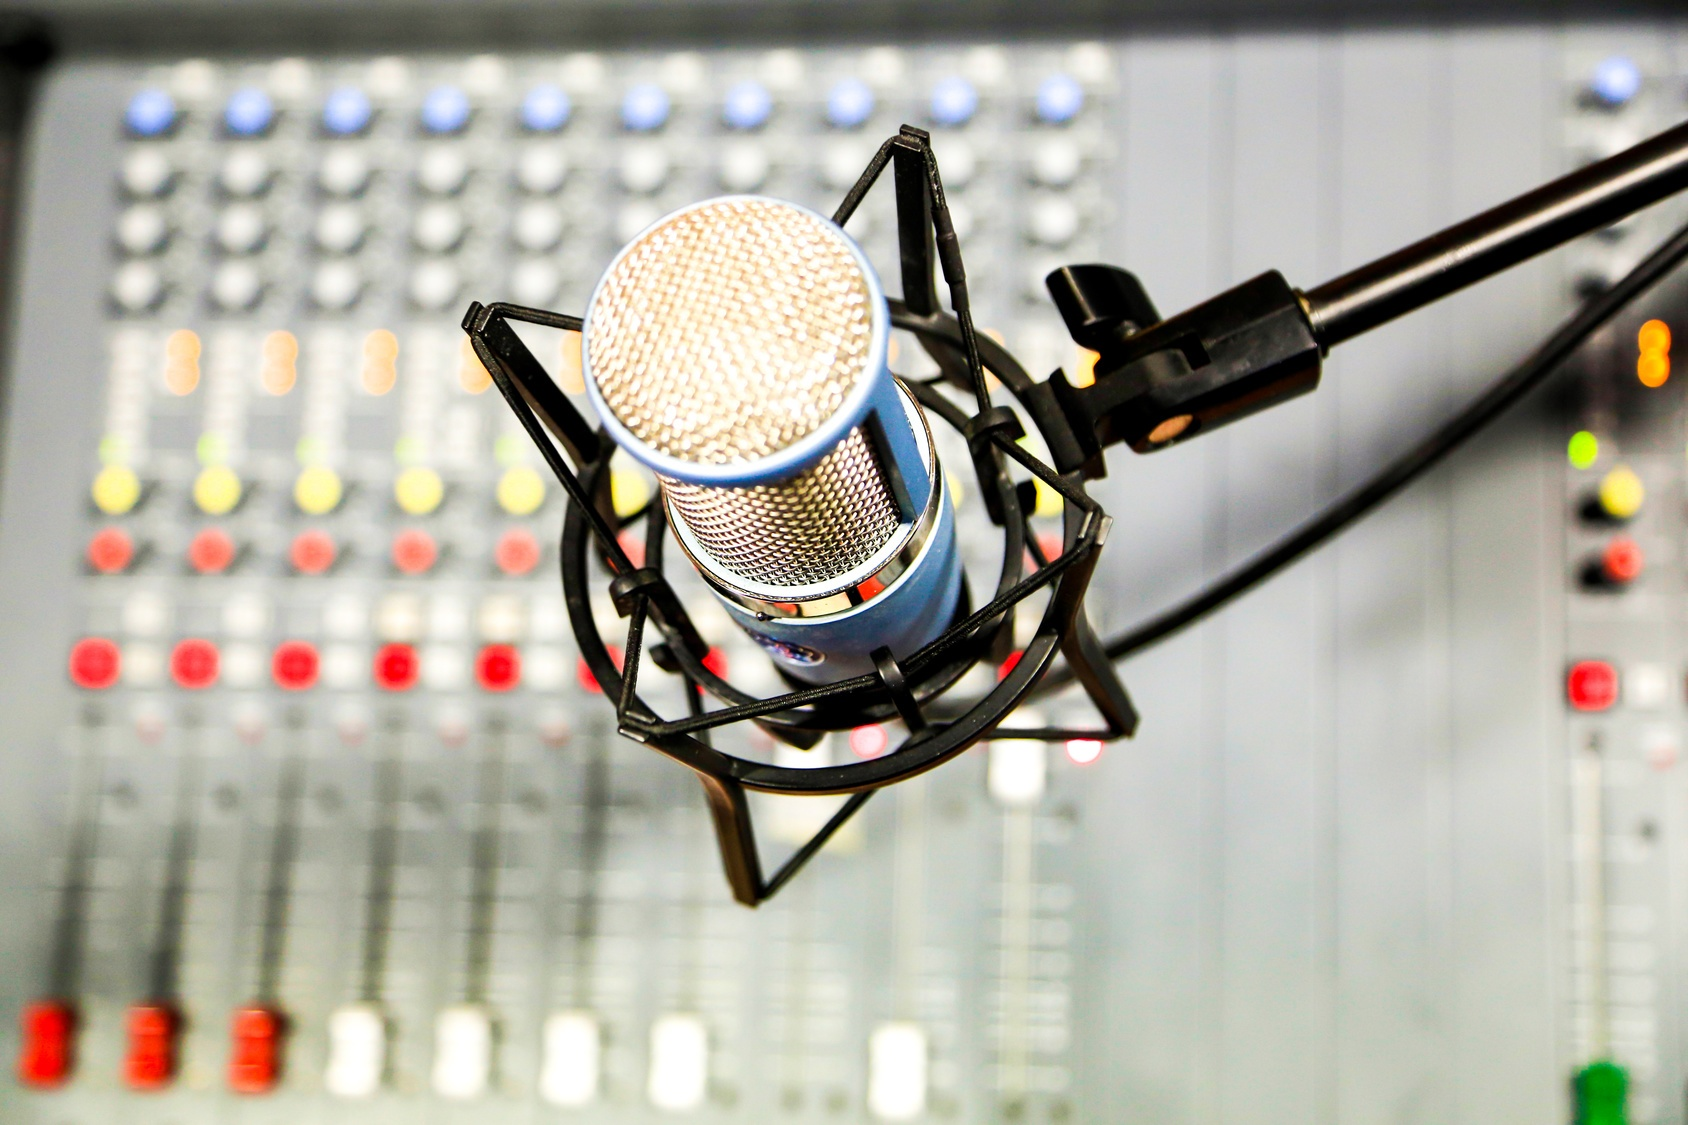 Marlin's CEO went on the air for an interivew with BBC Radio to talk about IP theft and how to fight it.